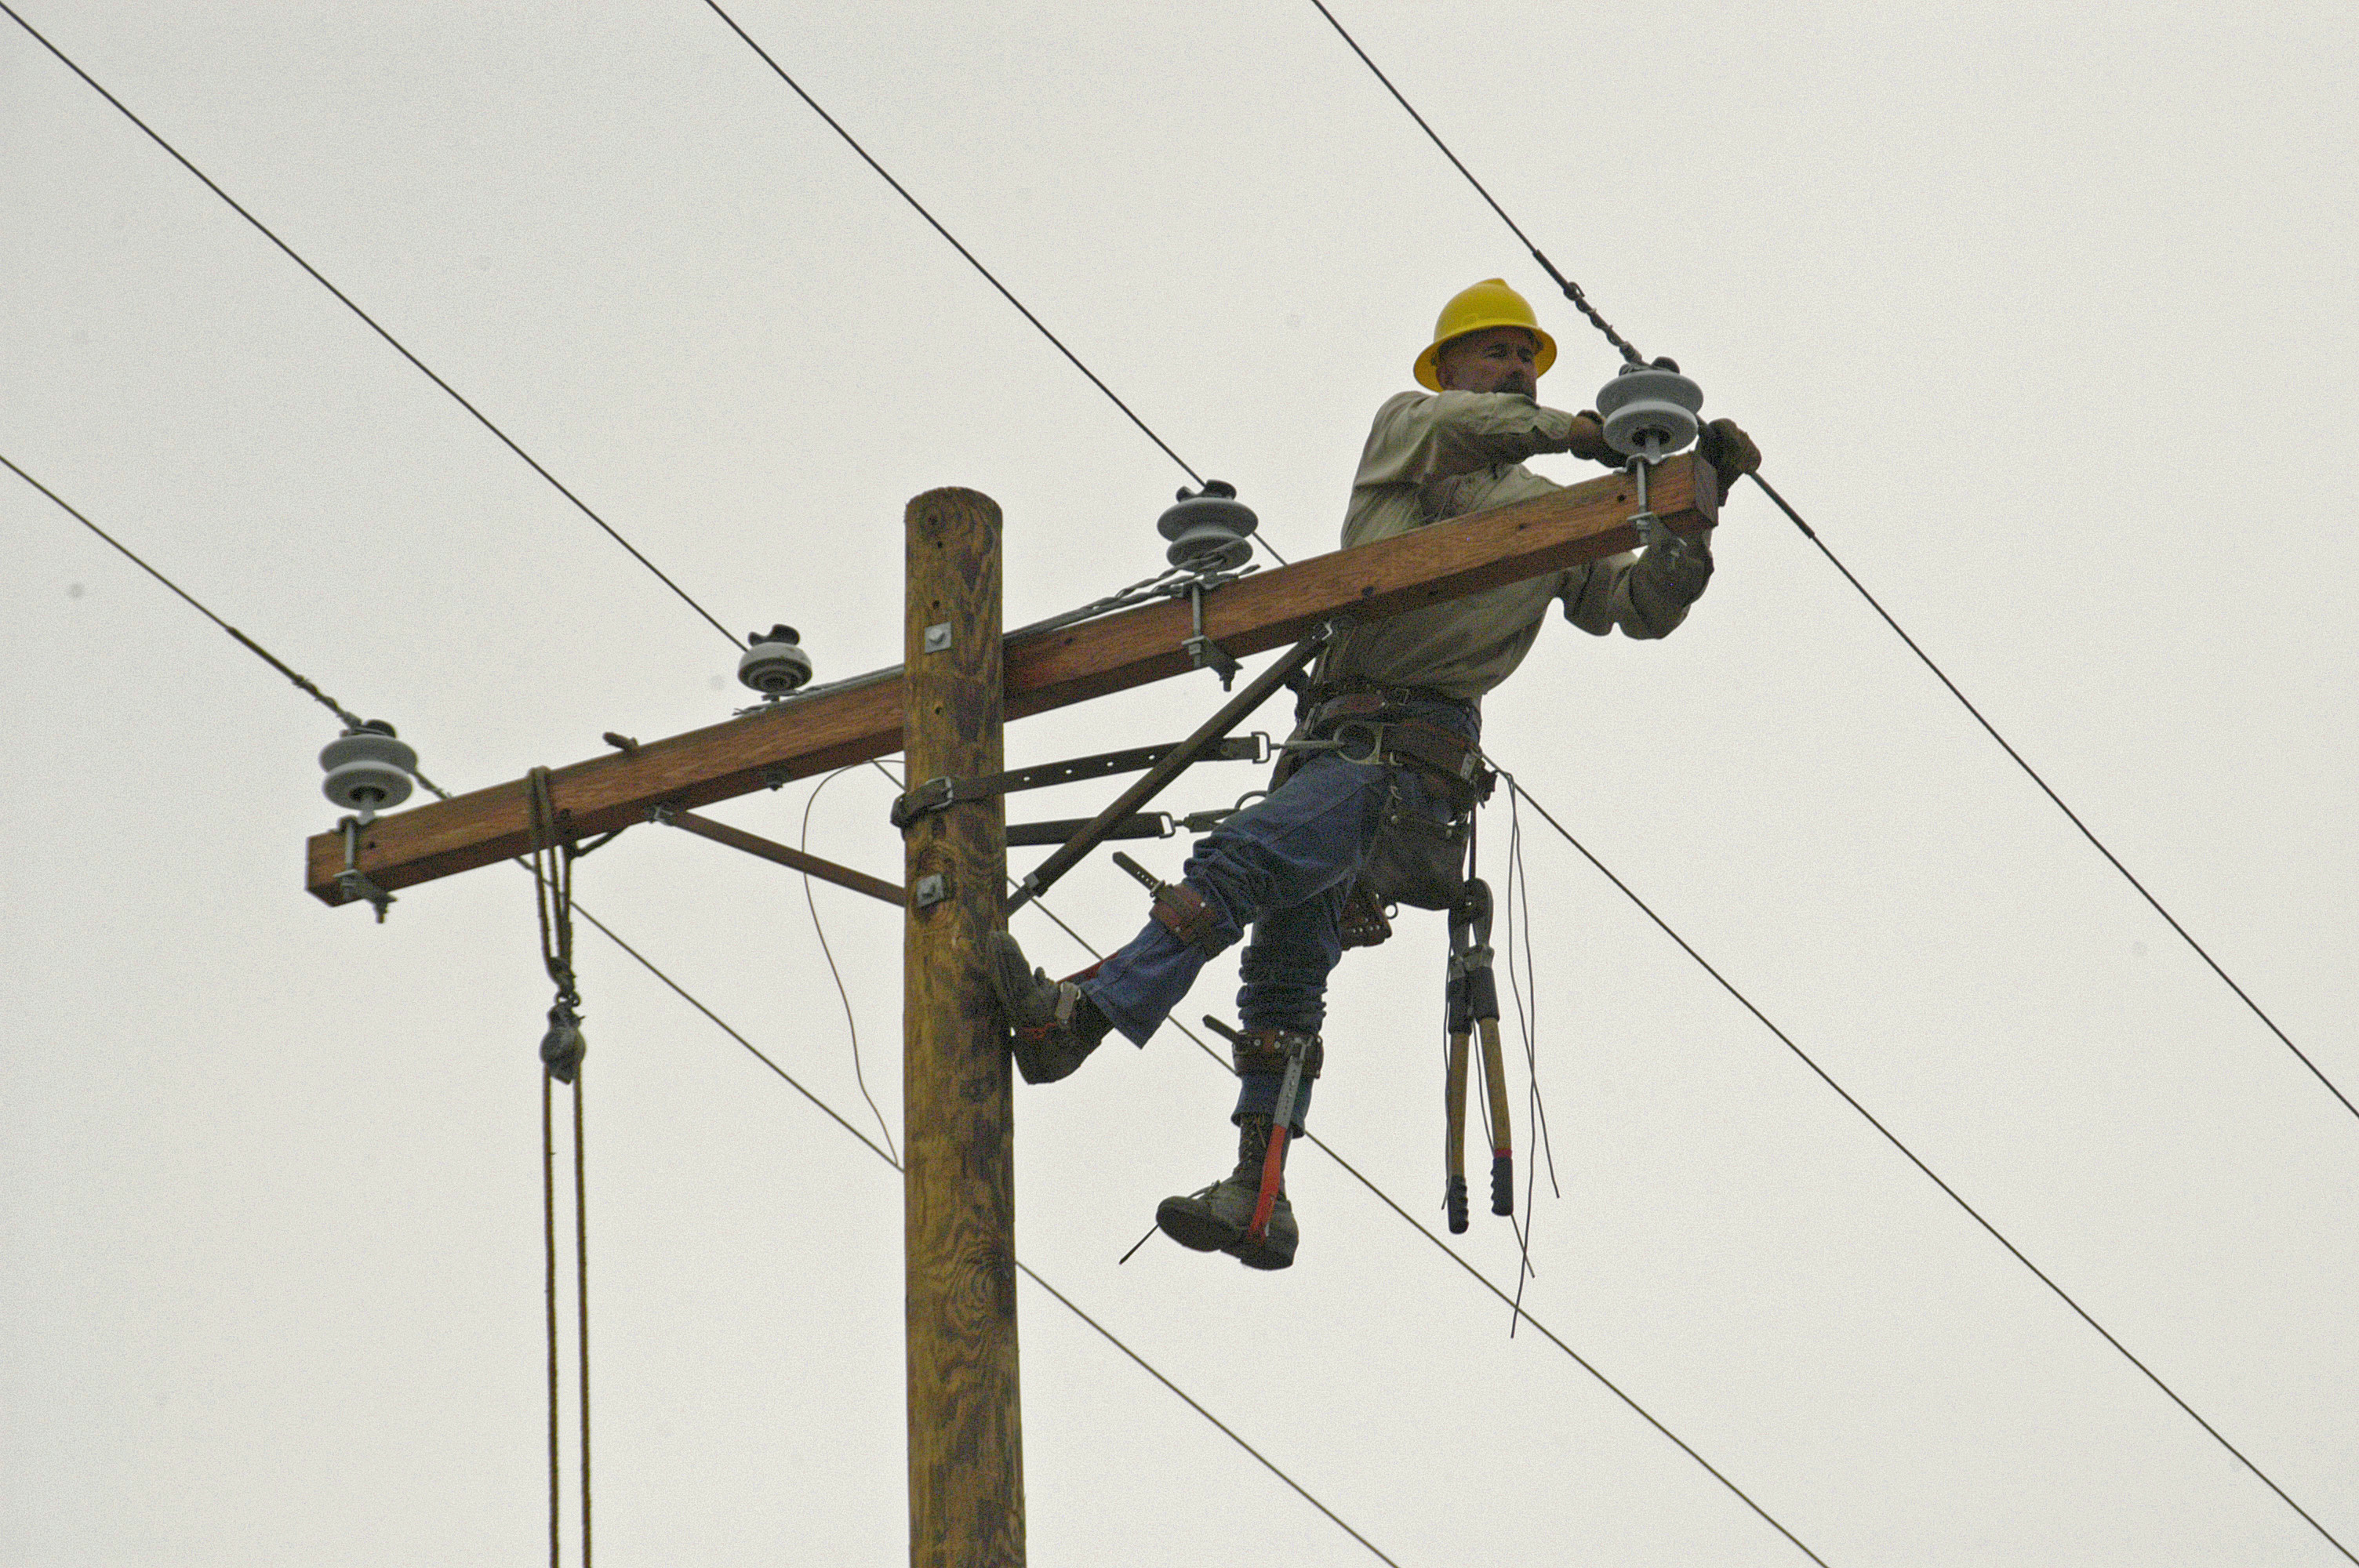 Electrical Line Worker Salary Wiring Gabe Titera Power Lineman By Infographic Rh Infograph Venngage Com Hazards A